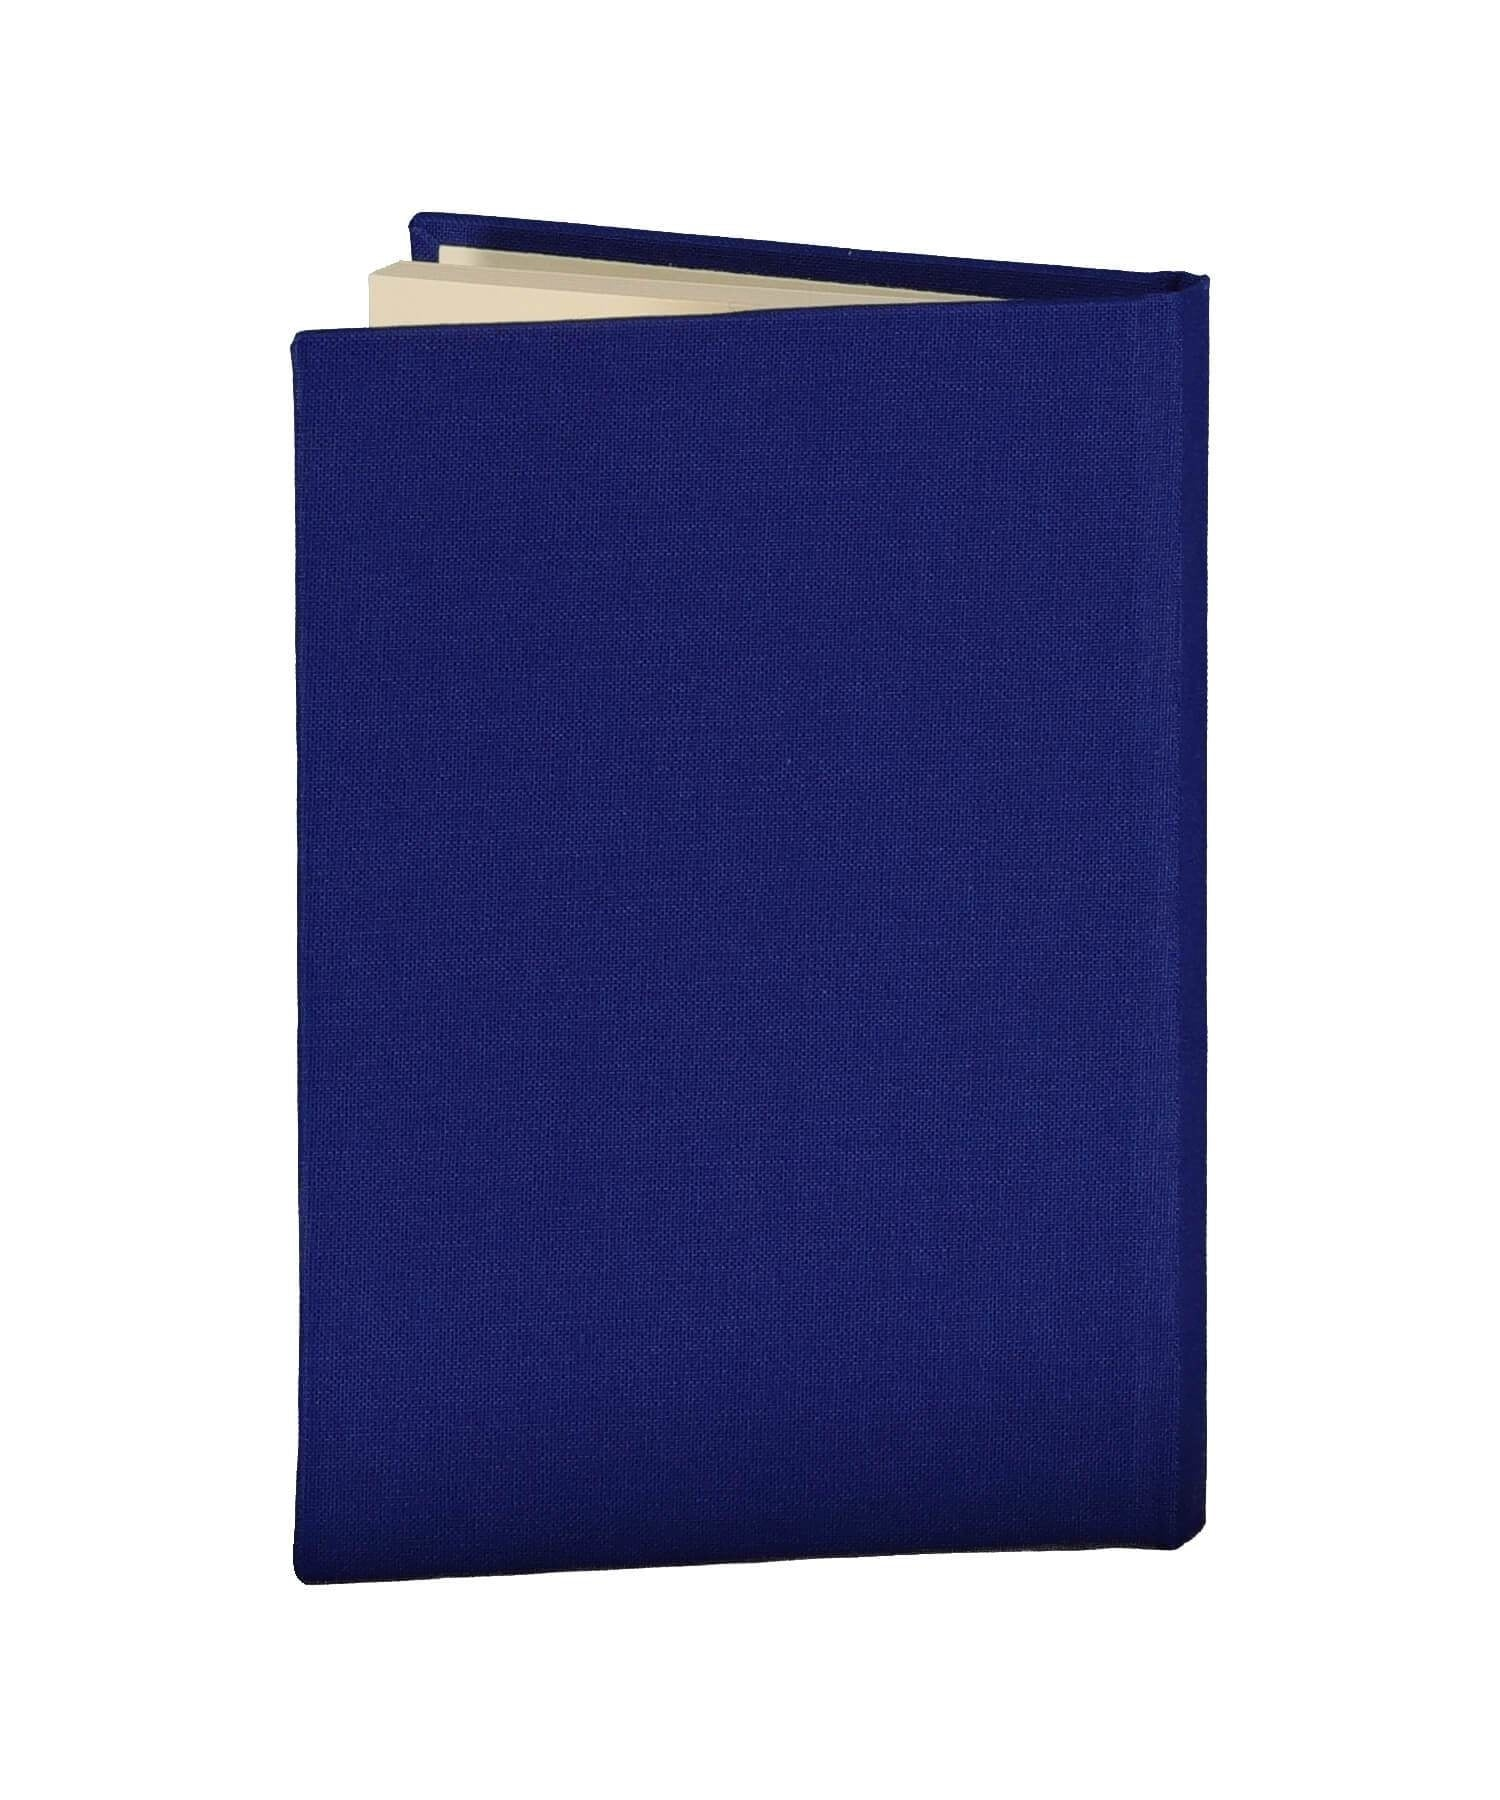 Trinity Knot Notebook - Ocean - [Duffy Bookbinders] - Books & Stationery - Irish Gifts